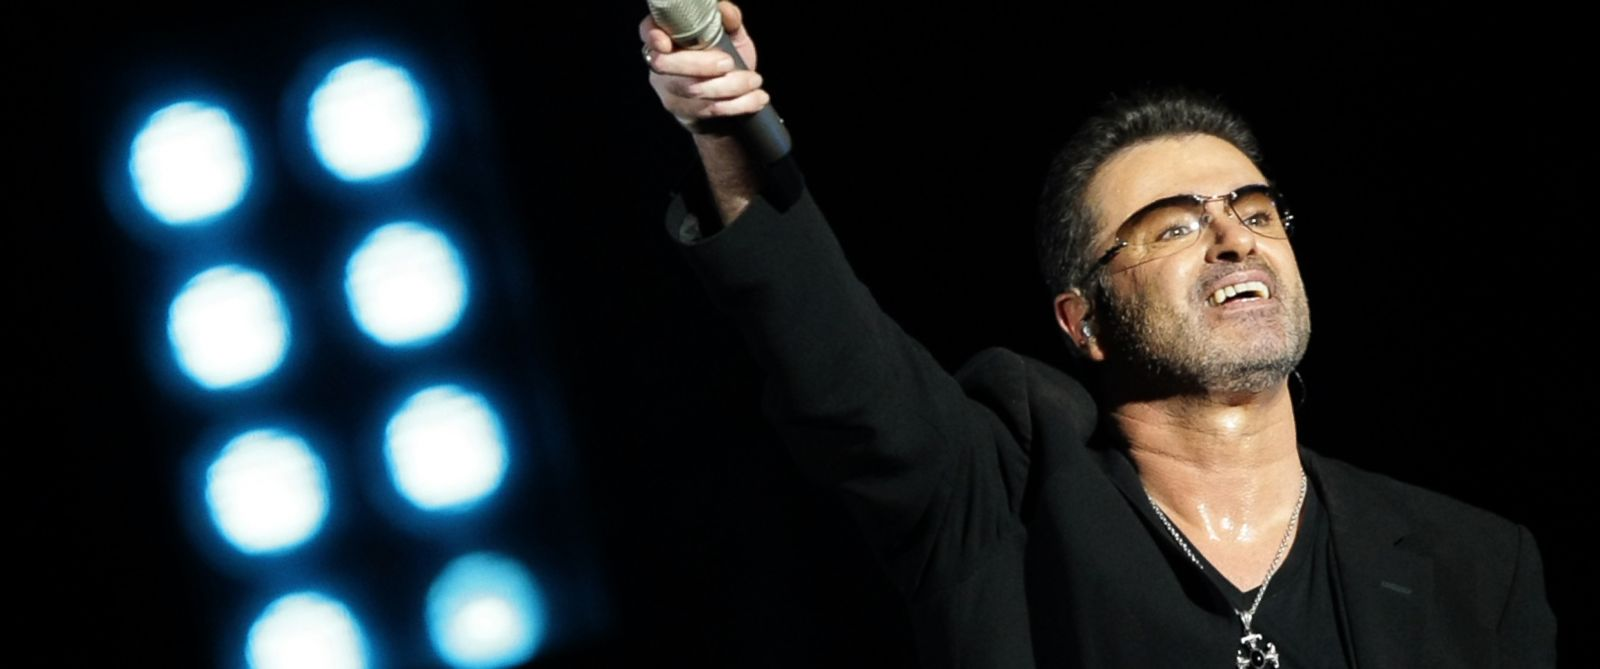 PHOTO: Pop singer George Michael performs in concert at the Zayed Sports City stadium, in Abu Dhabi, on Dec. 1, 2008.